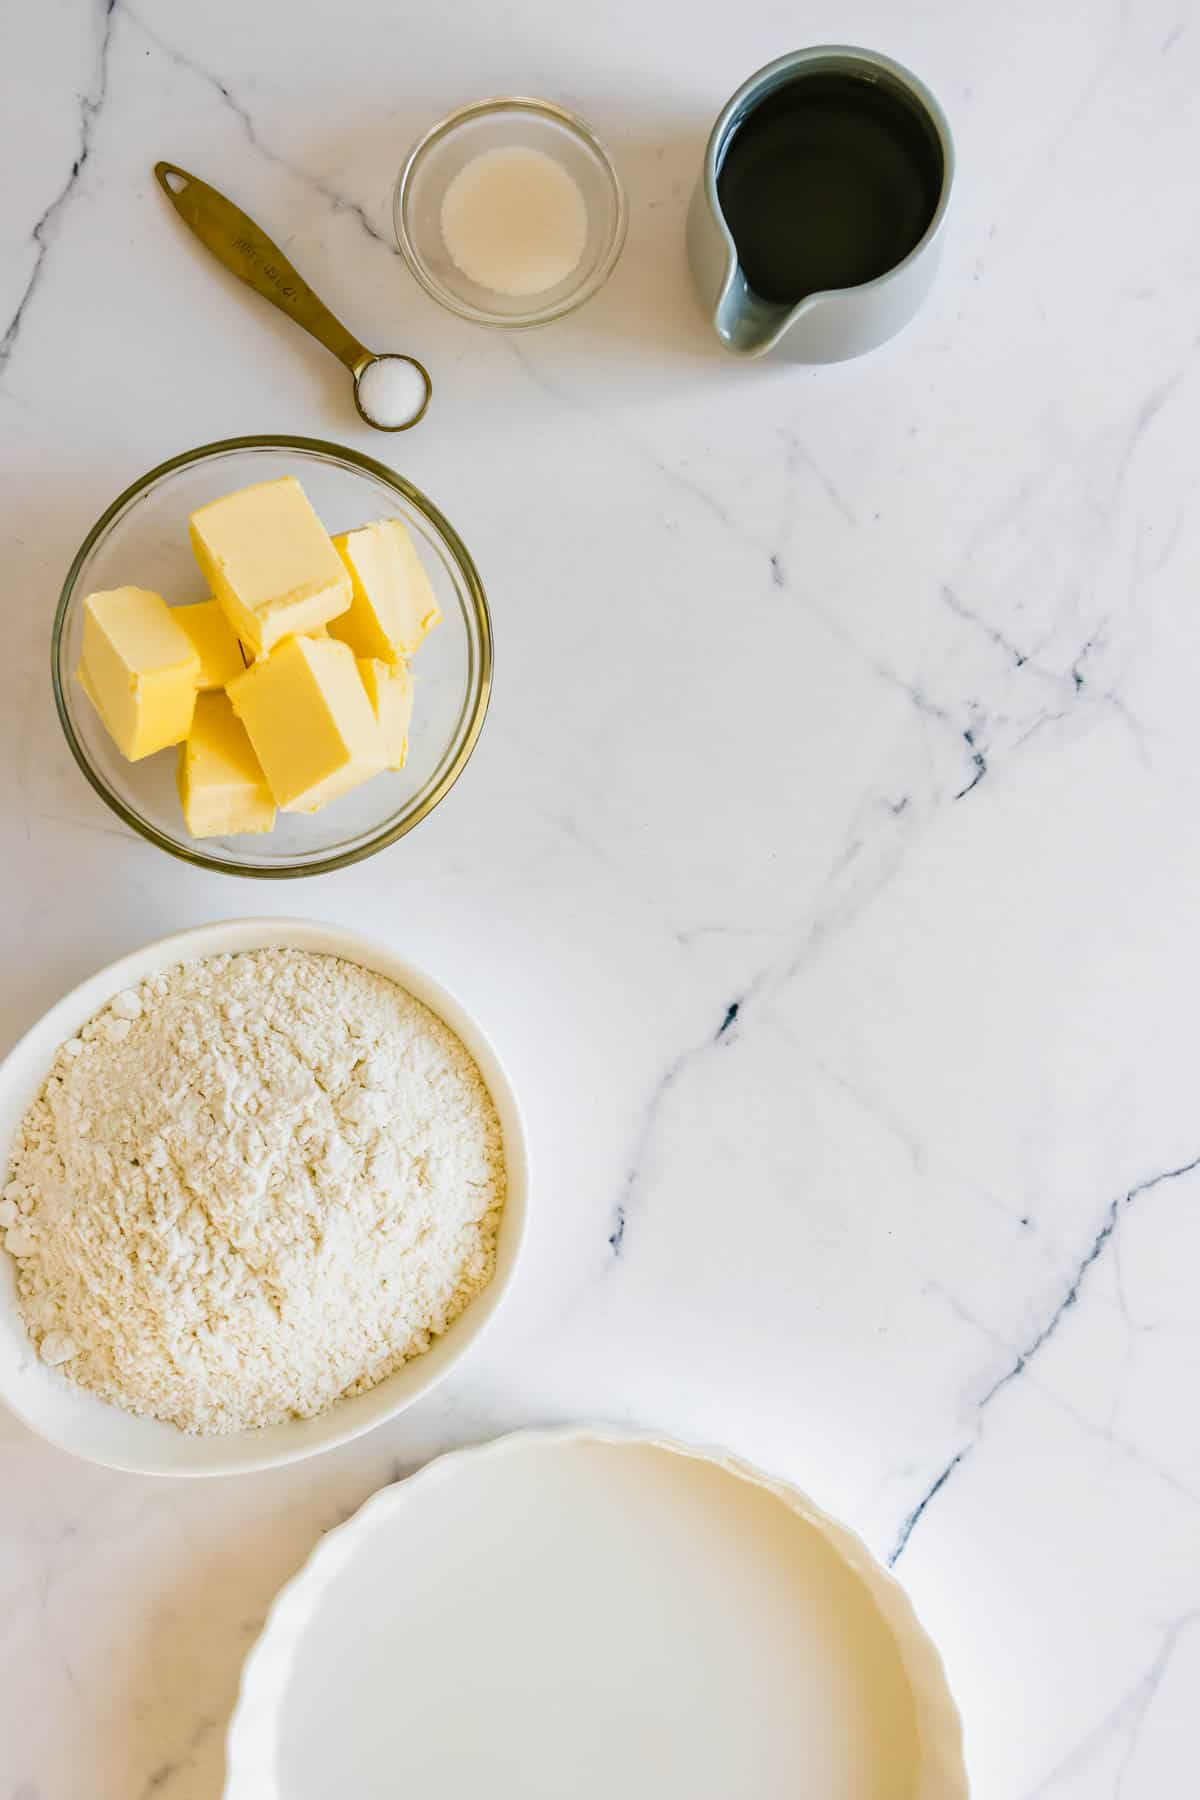 A Pie Dish, Cubed Butter, Gluten-Free Flour and the Rest of the Pie Crust Ingredients on a White Surface